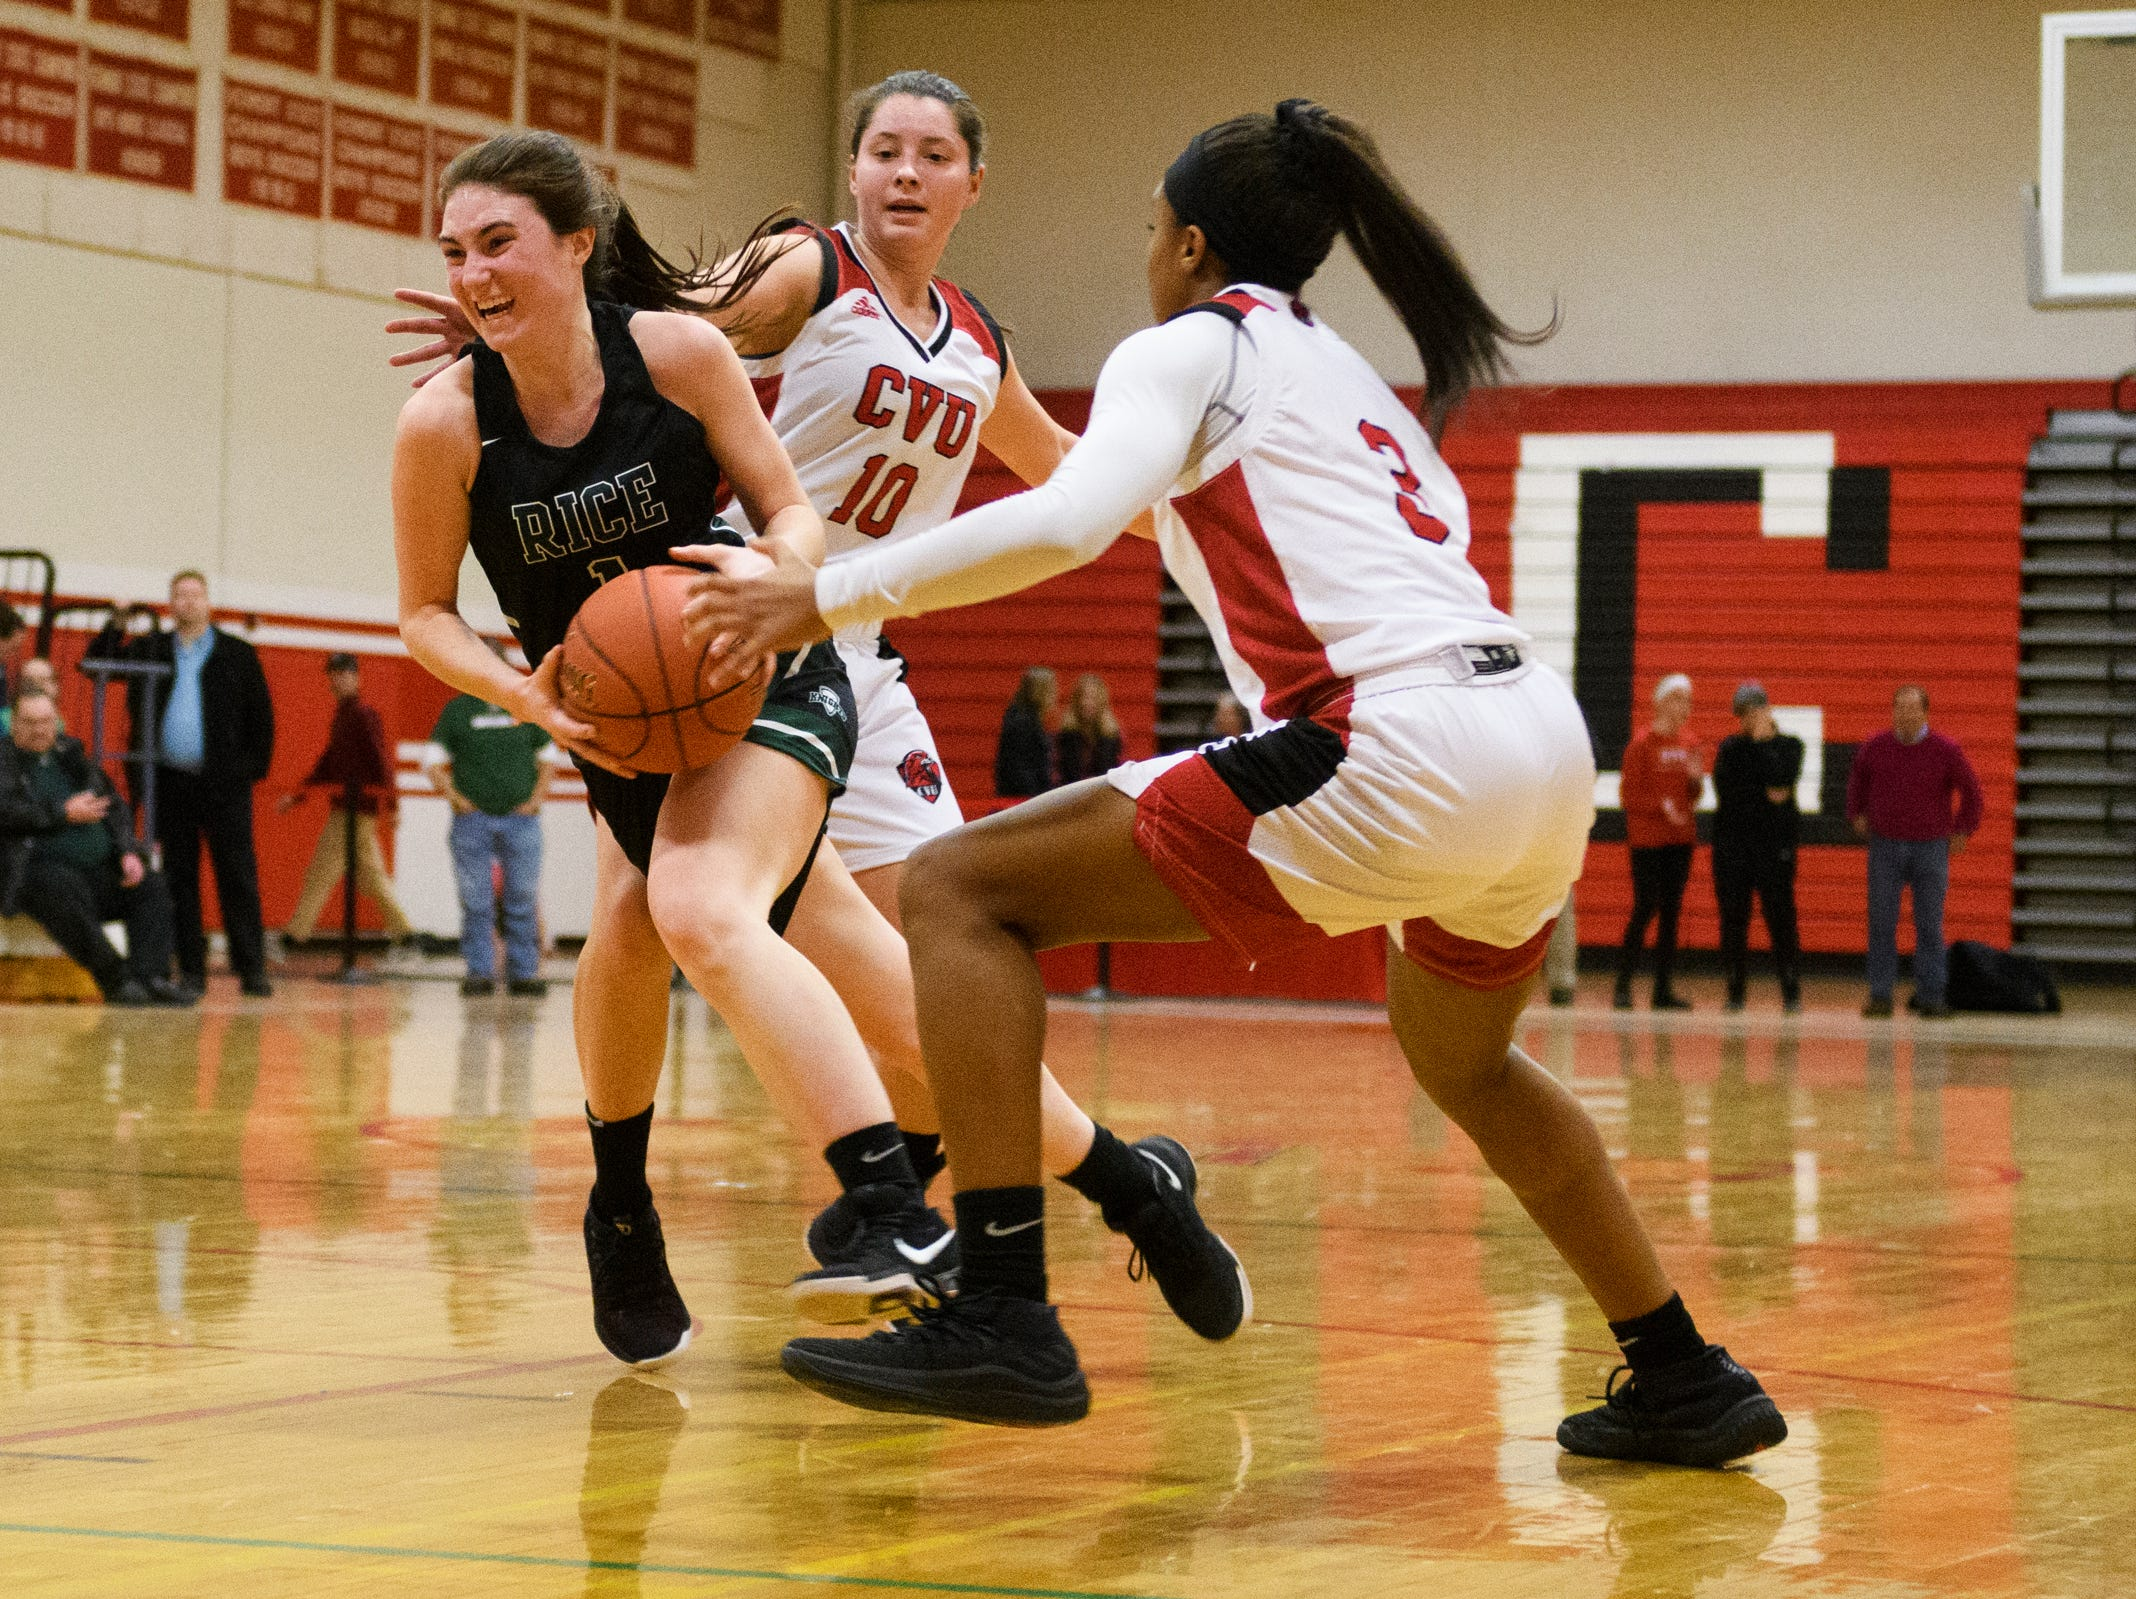 Rice's Kristen Varin (1) drives to the hoop past CVU's Makkena Boyd (3) and Quinn Boardman (10) during high school girls basketball game between the Rice Green Knights and the Champlain Valley Union Redhawks at CVU High School on Friday night January 11, 2019 in Hinesburg.